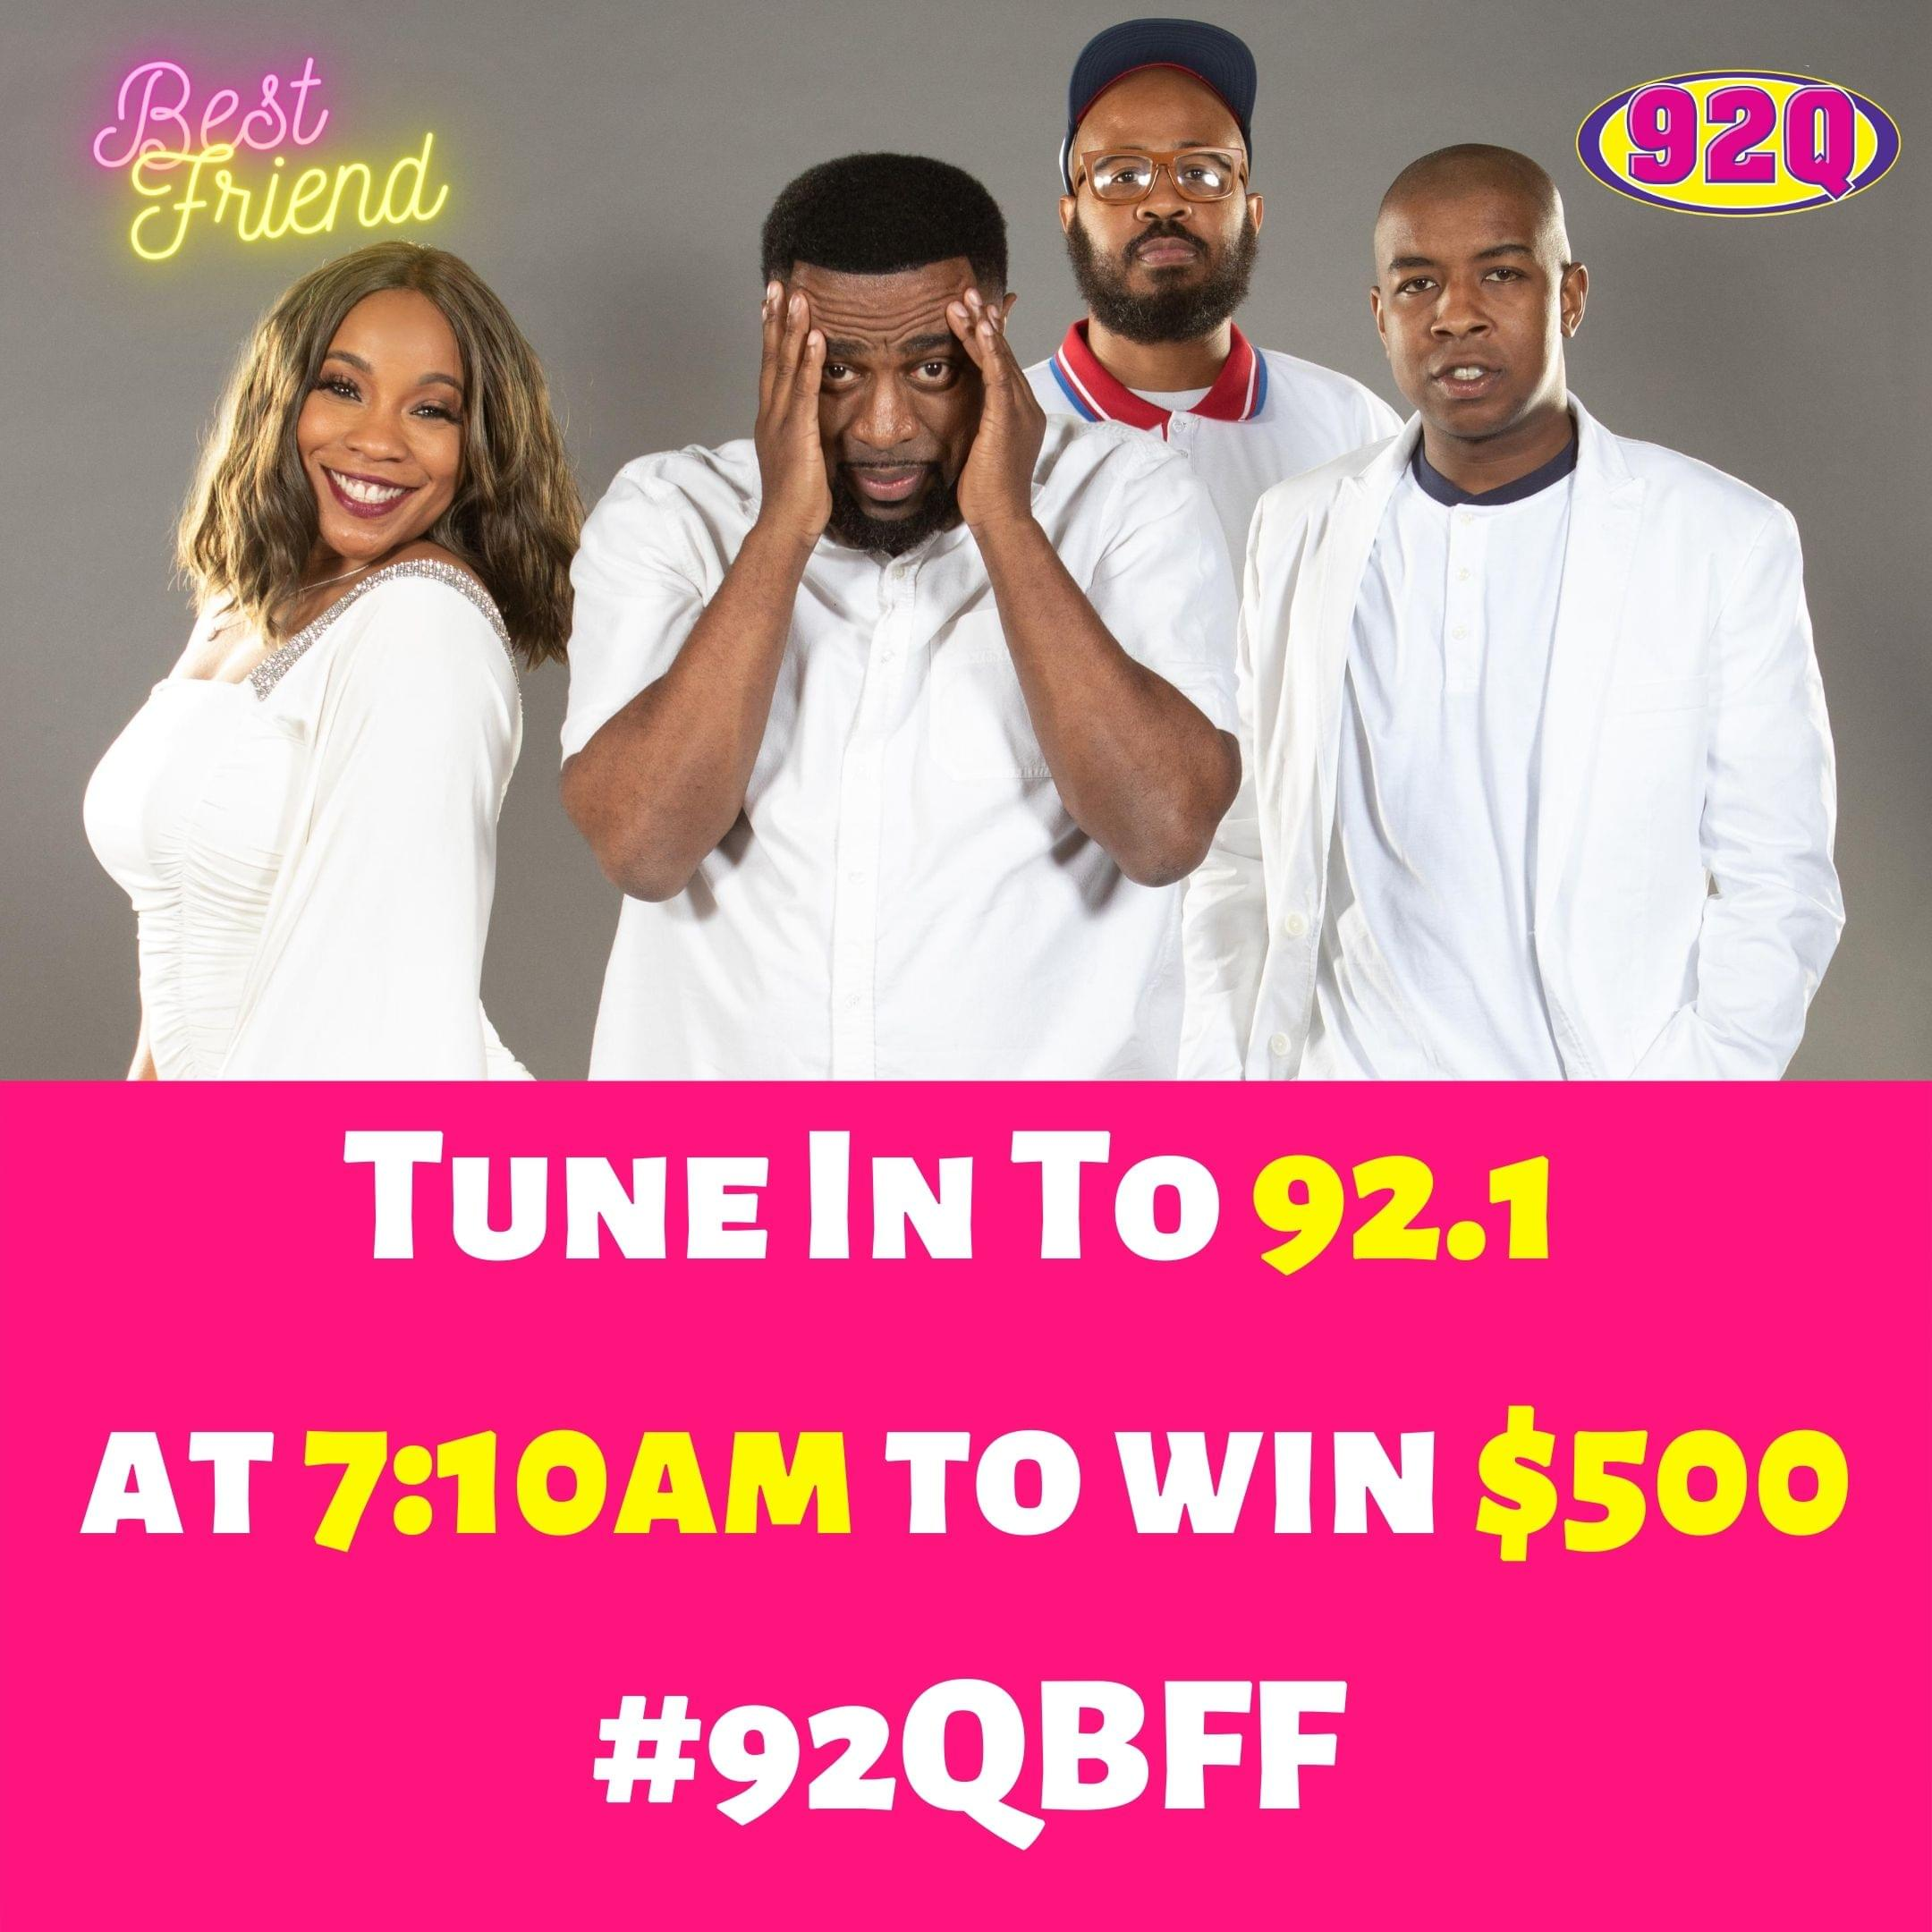 Tune In To 92.1 at 7_10am to win $500 #92QBFF